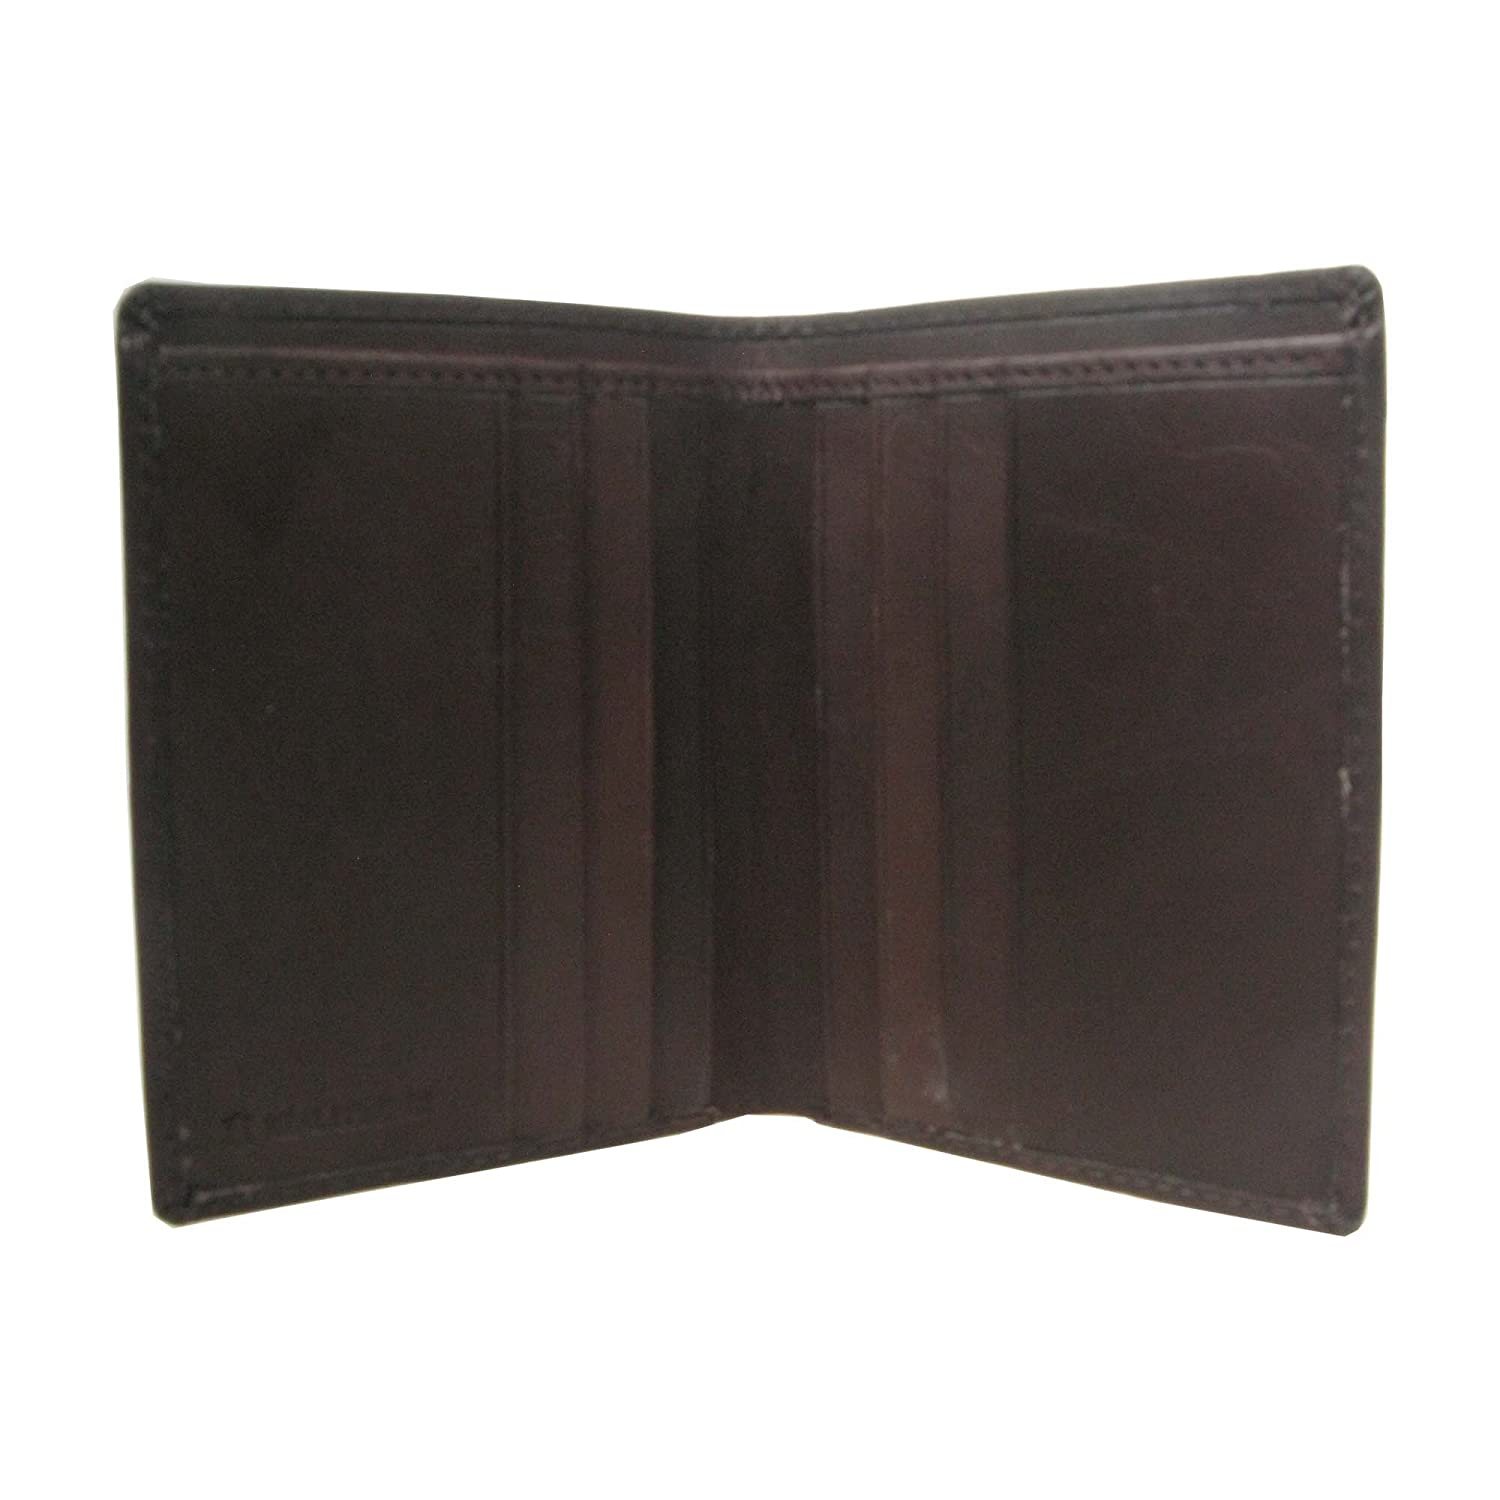 Mens High Quality 8 Credit Card holder and Cash Pocket Real Leather Wallet 824 (Brown)